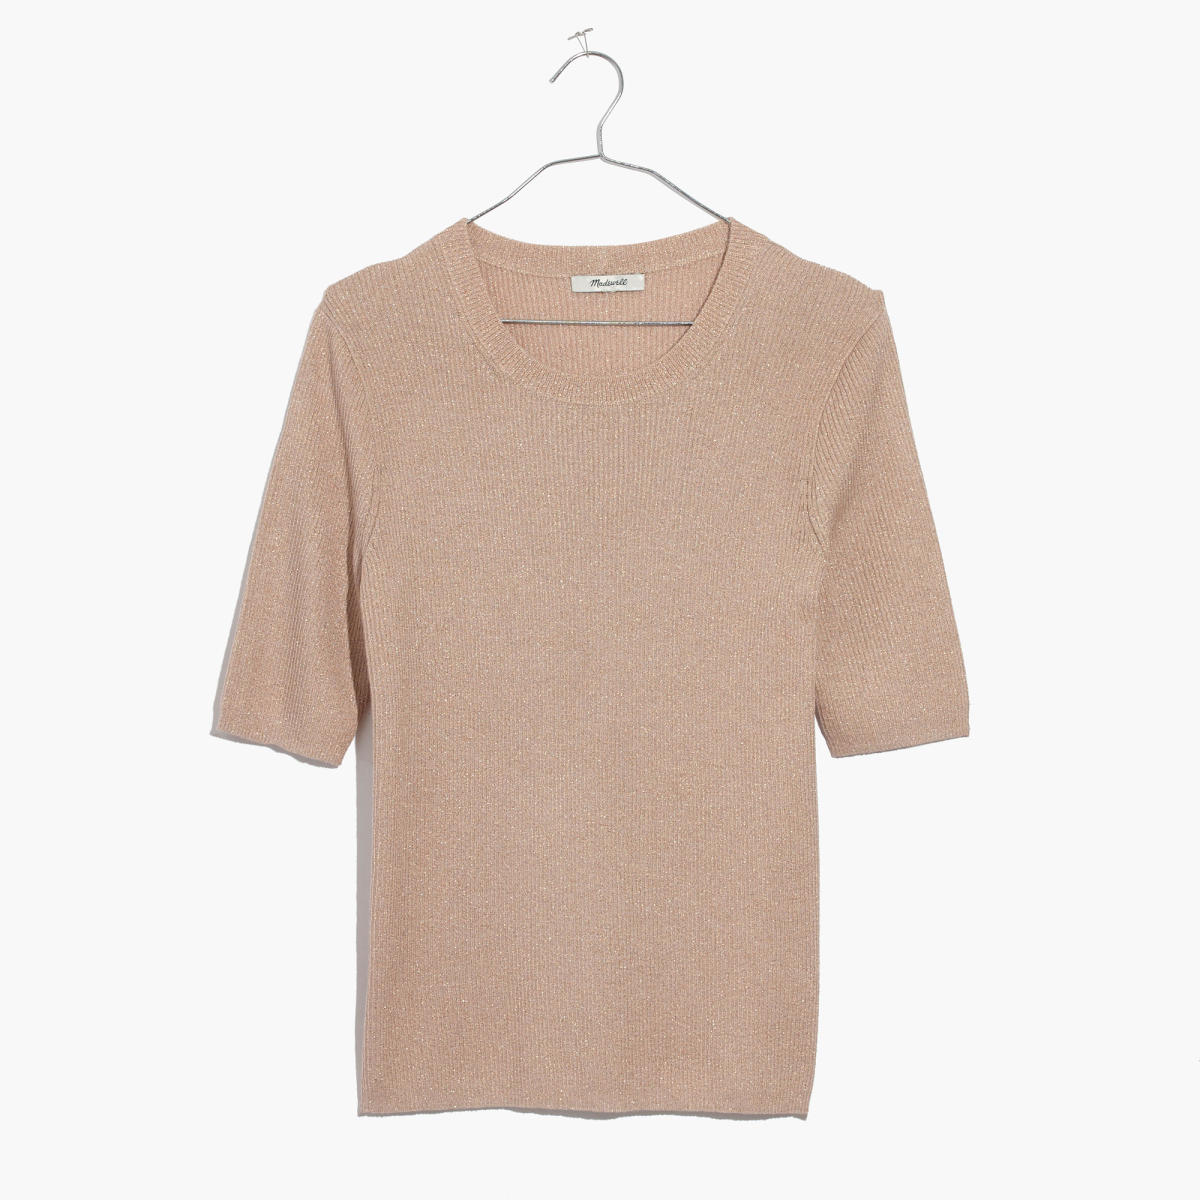 "Madewell evening sparkle ribbed sweater top in ""metallic blush,"" $34.99 (from $65), available at Madewell."